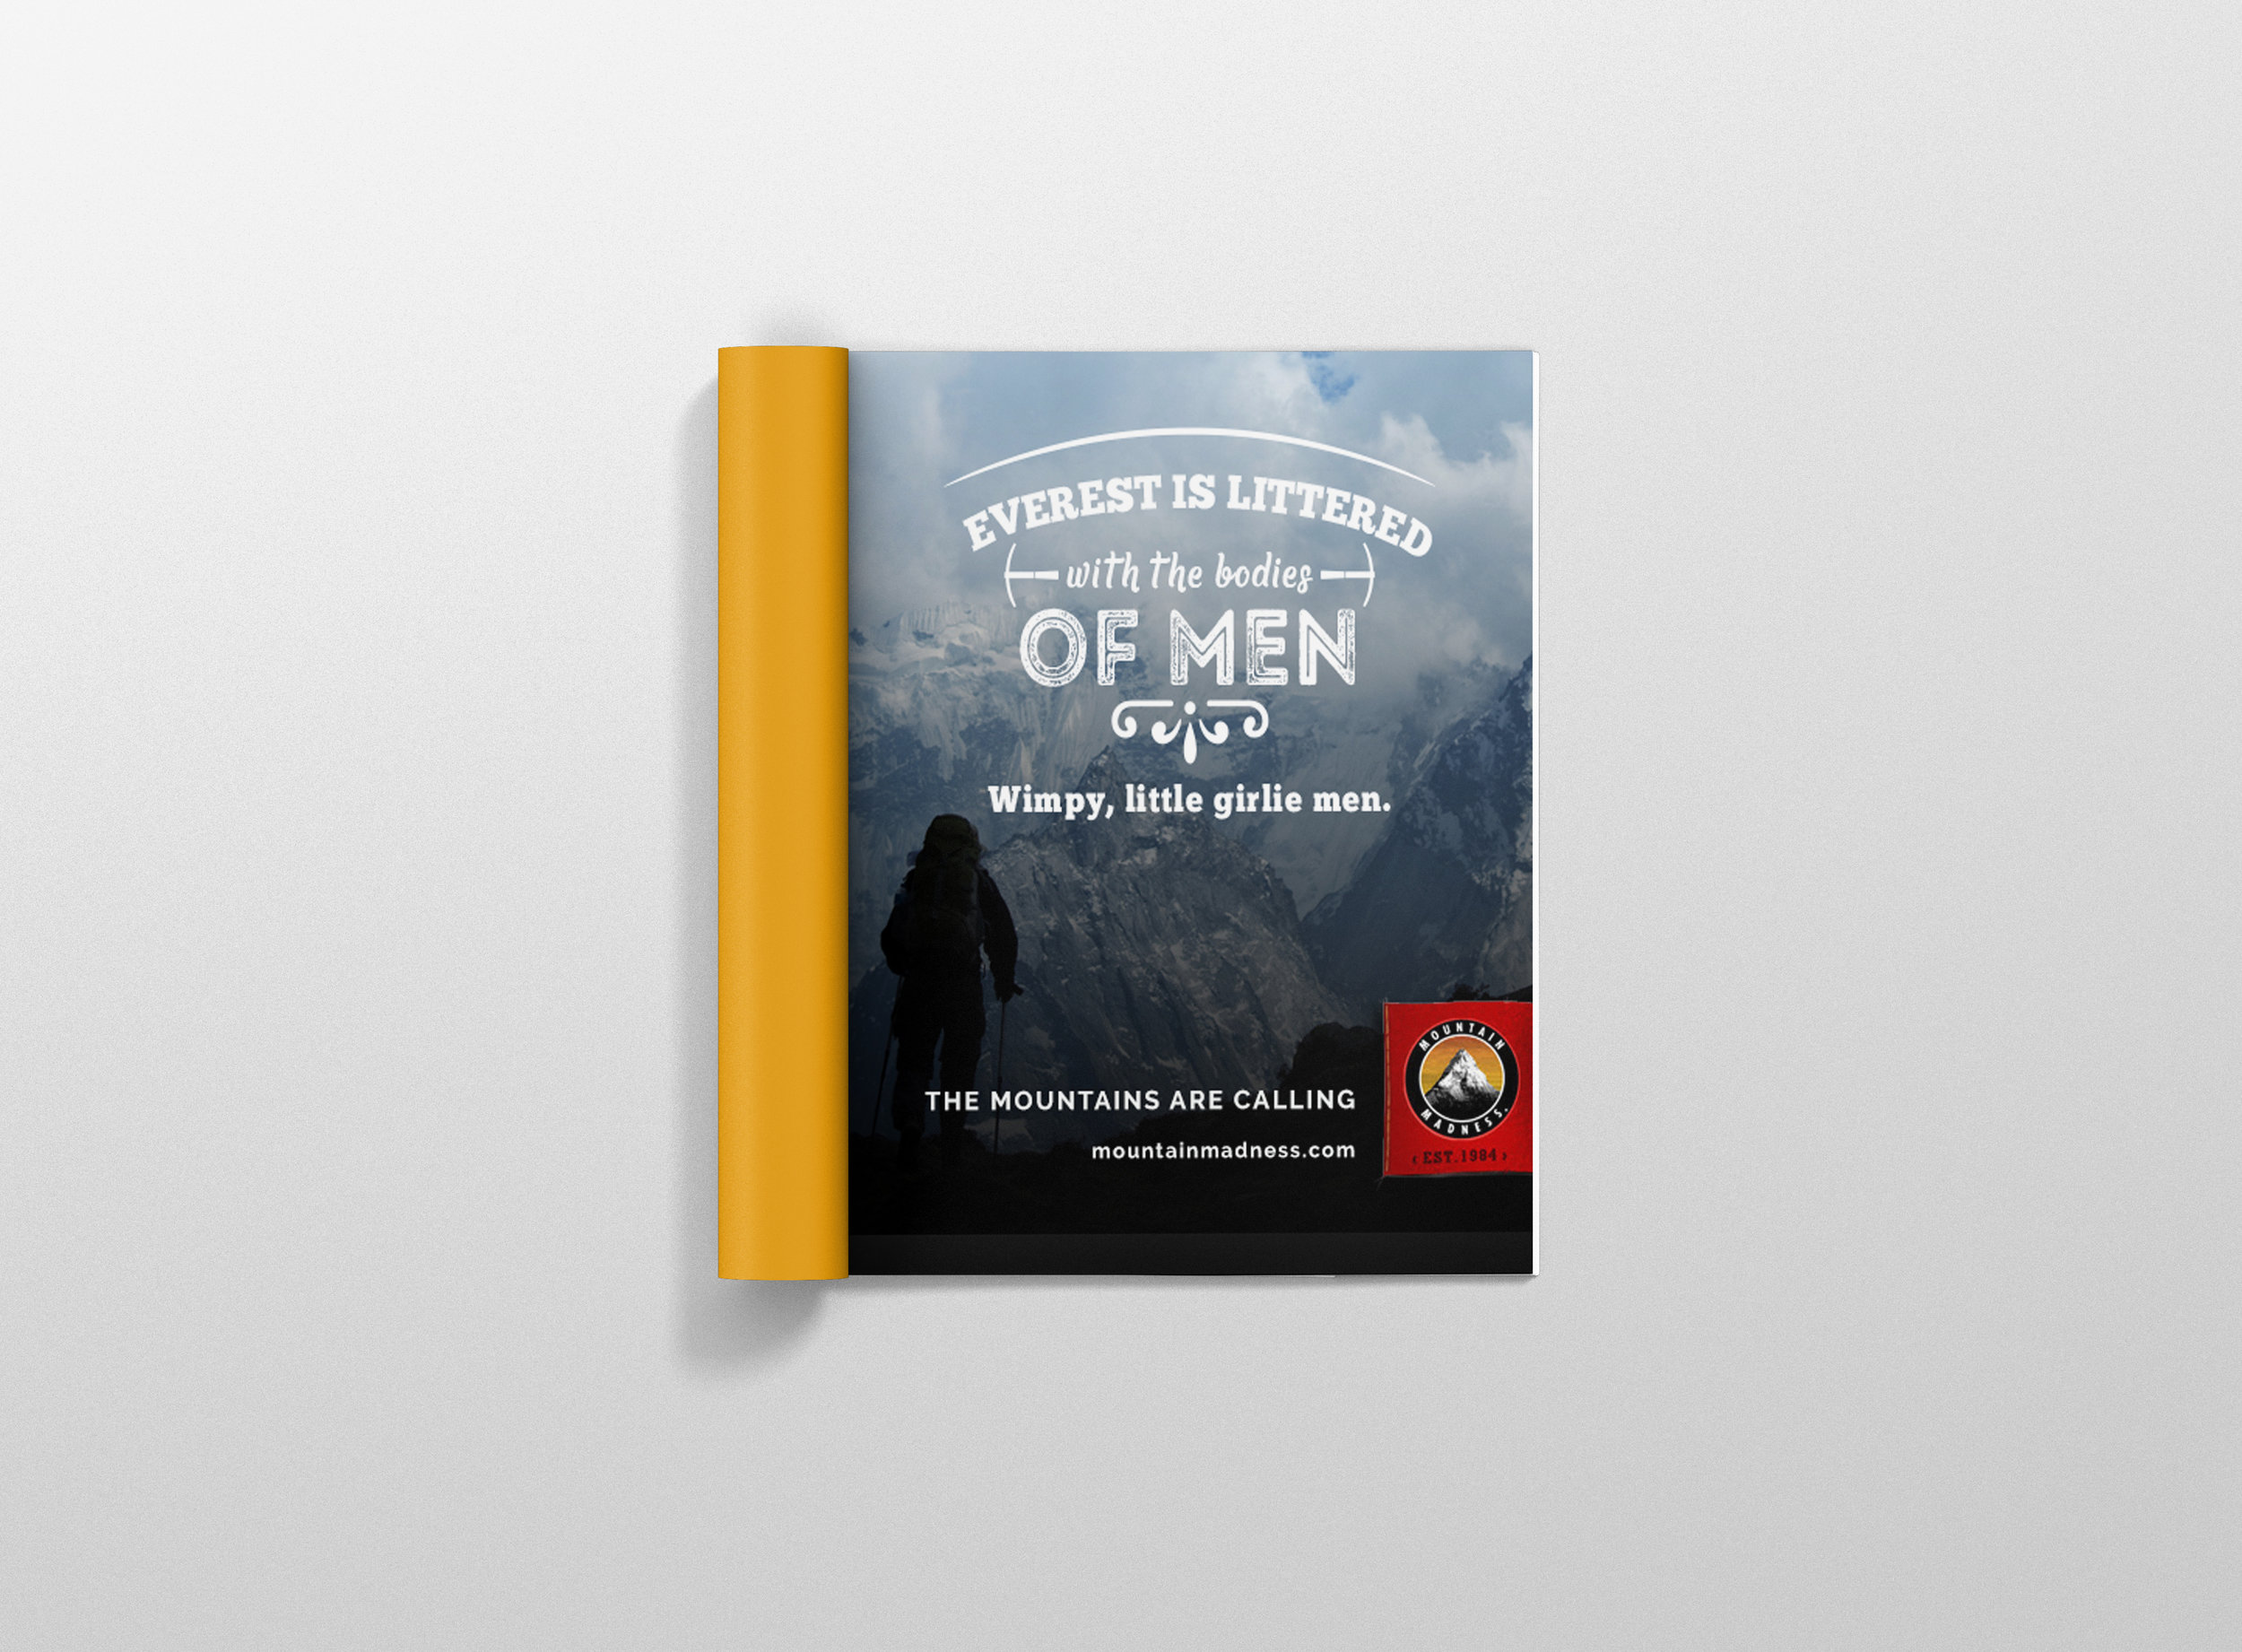 Everest girlie men in magazine.jpg